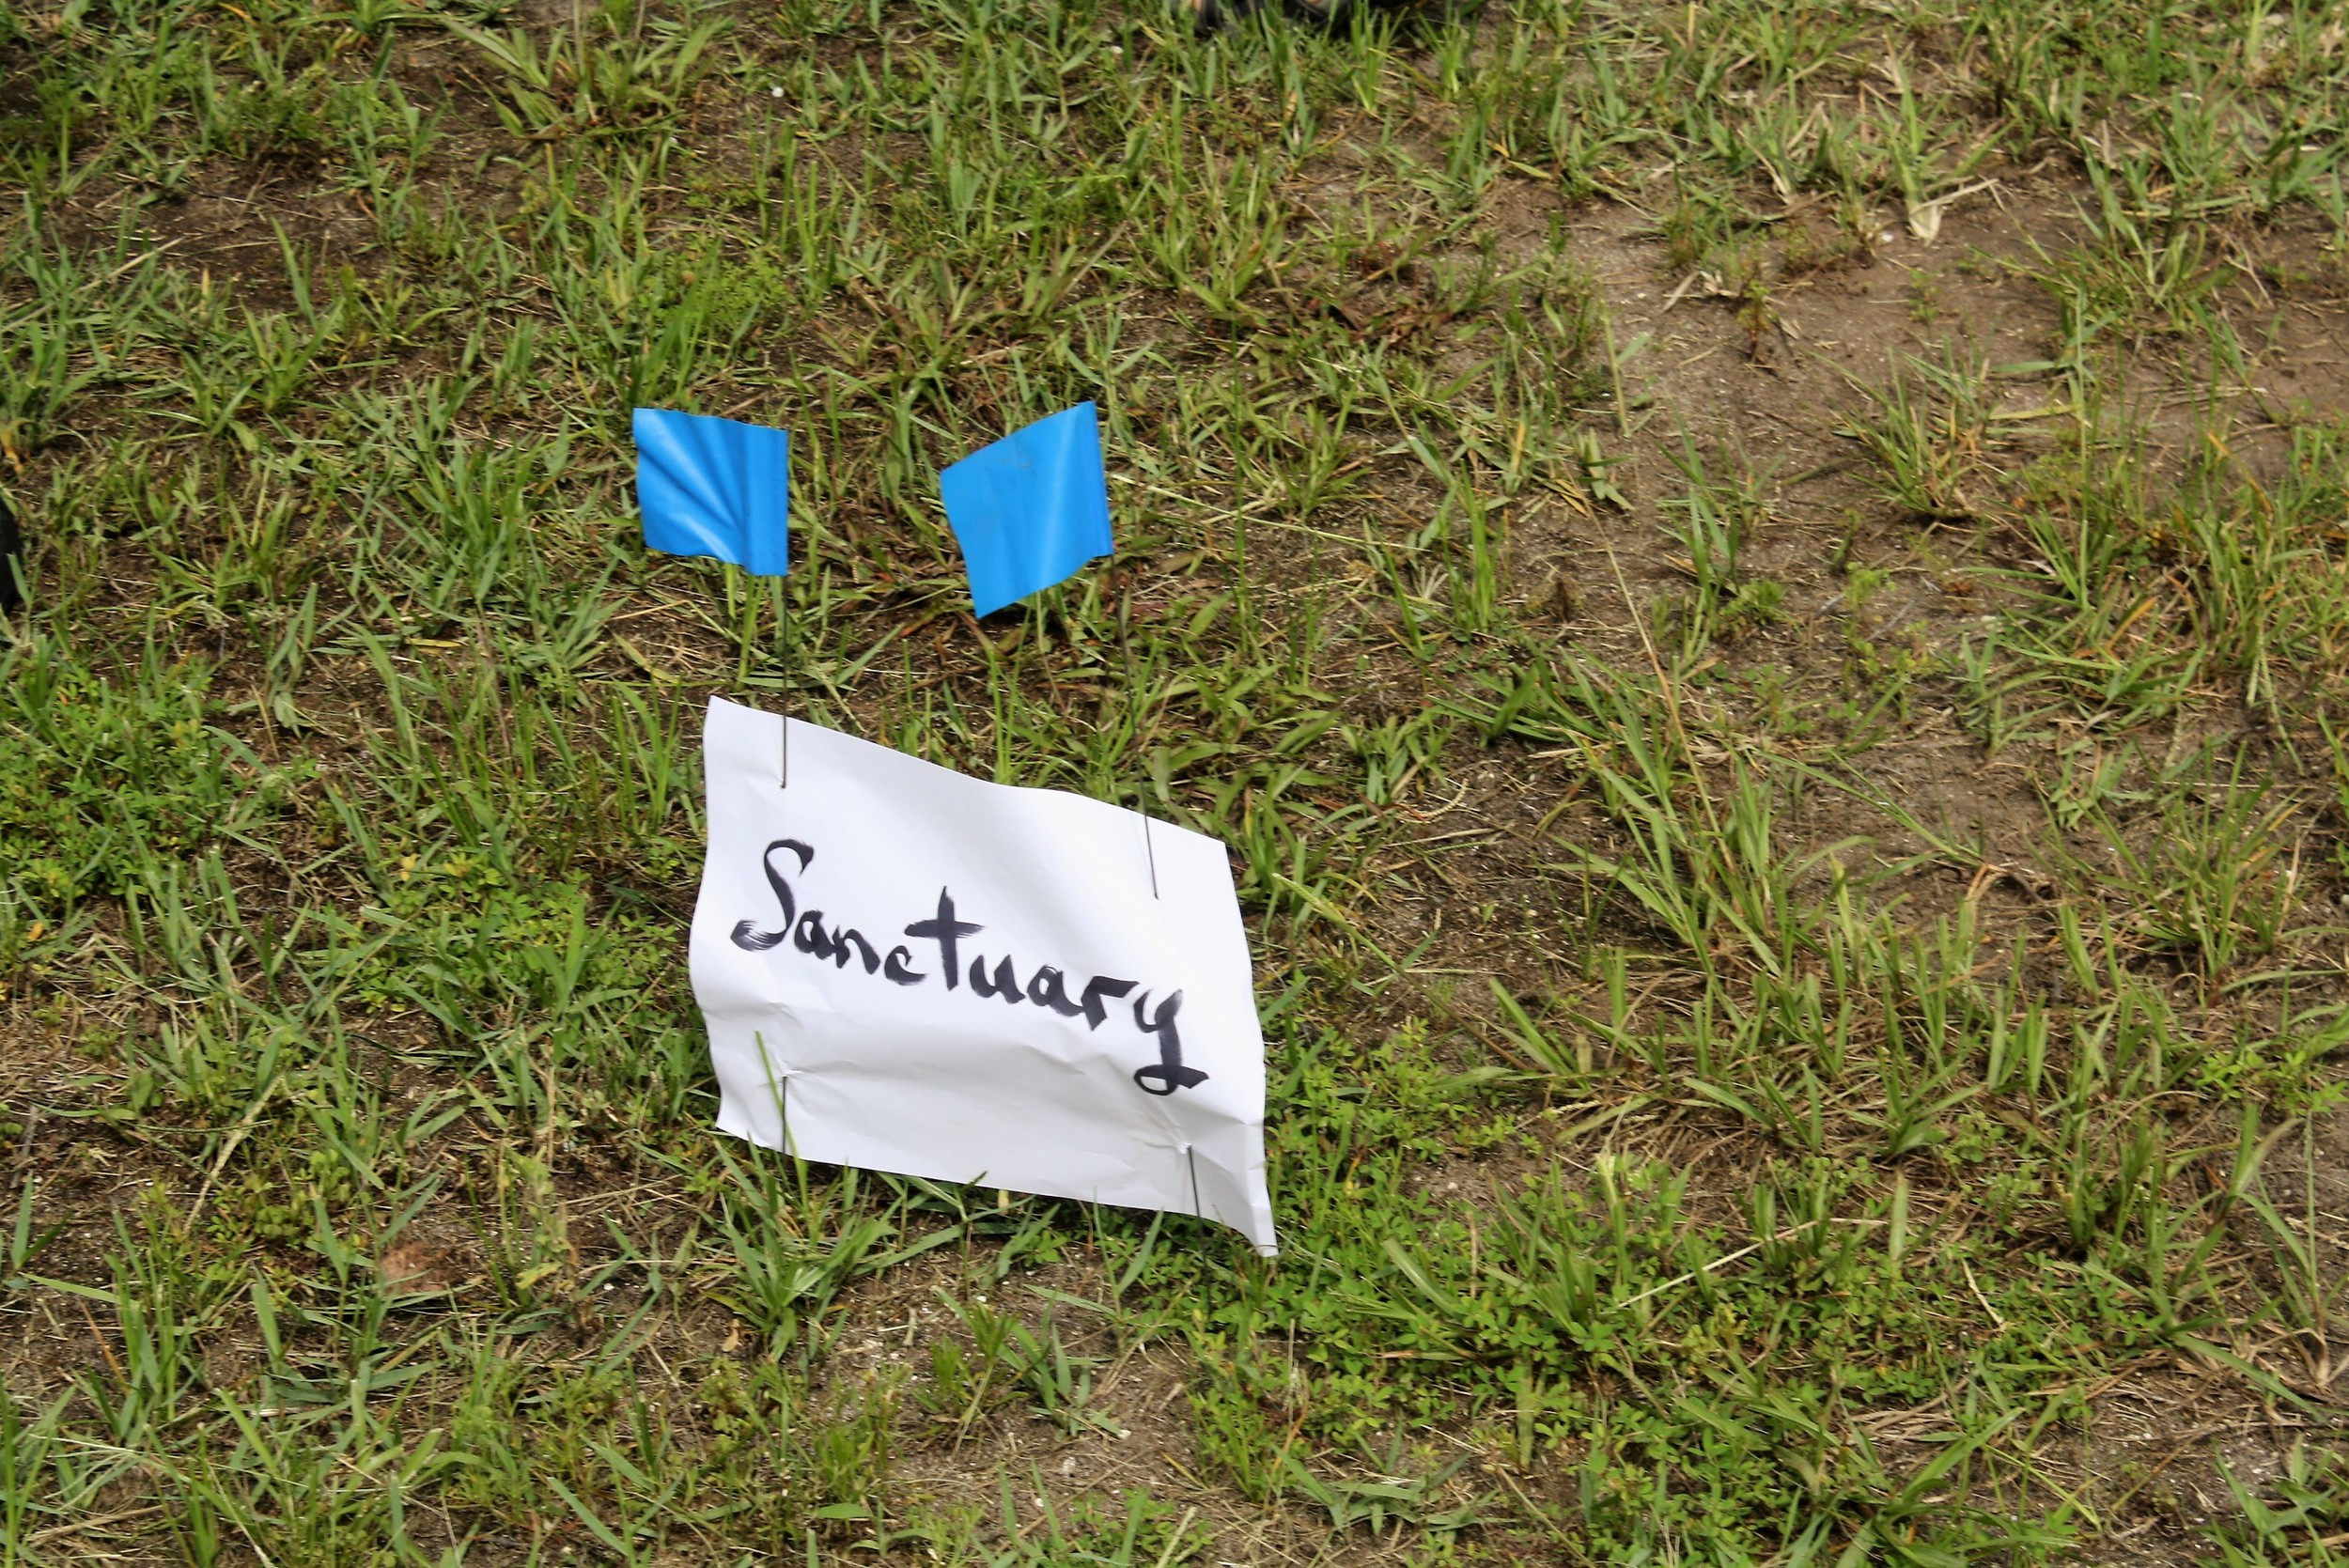 A stake marks the spot where Lord of Life Lutheran Church's new sanctuary will be.